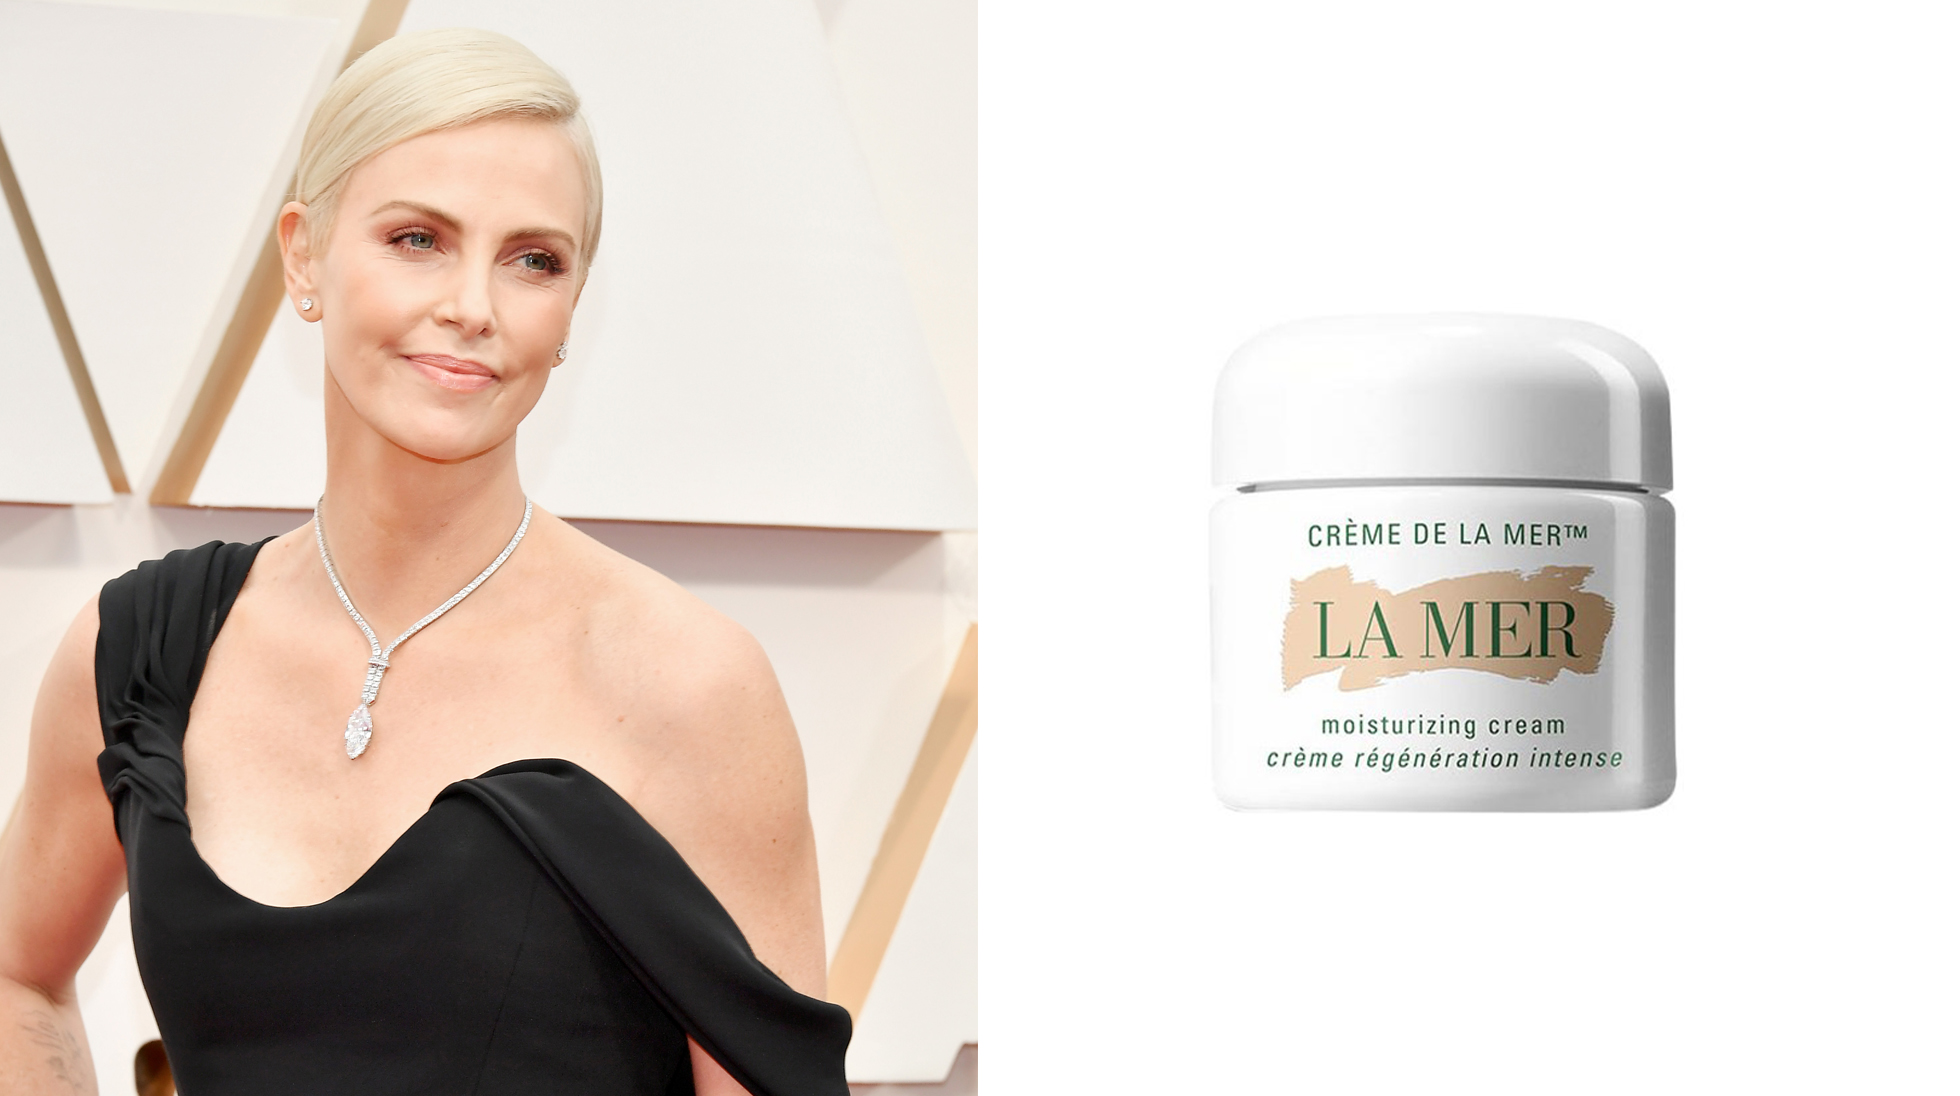 Productos de belleza celebrities: Charlize Theron